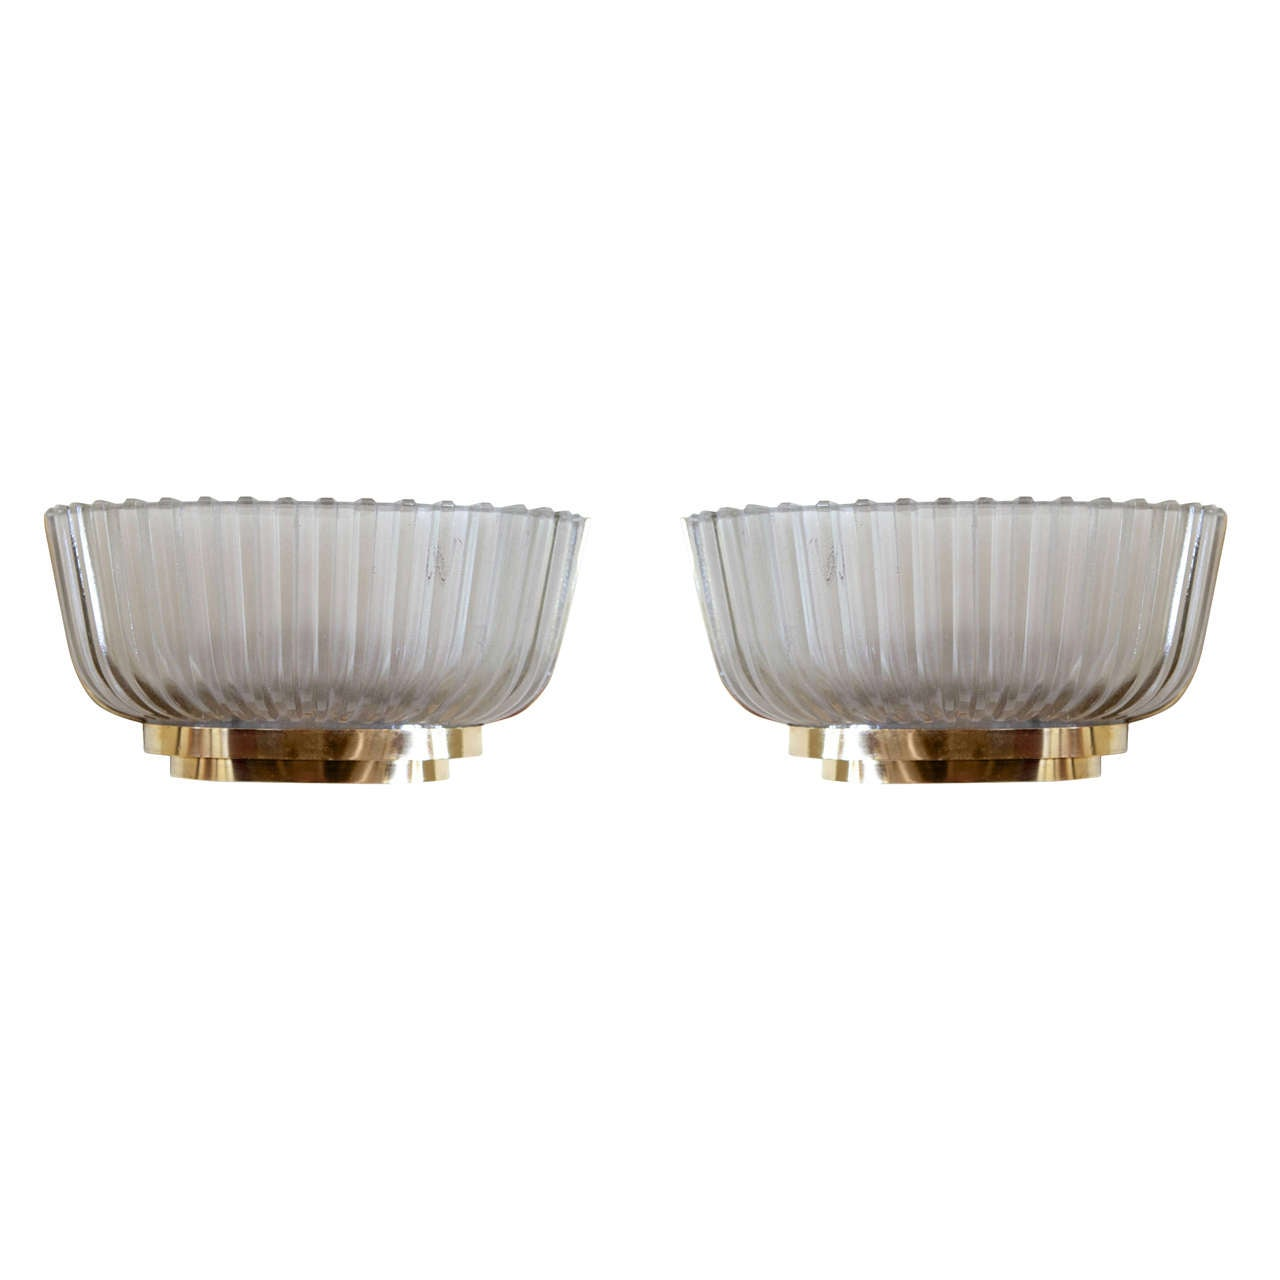 Pair of Murano Fluted Glass and Brass Sconces by Venini For Sale at 1stdibs